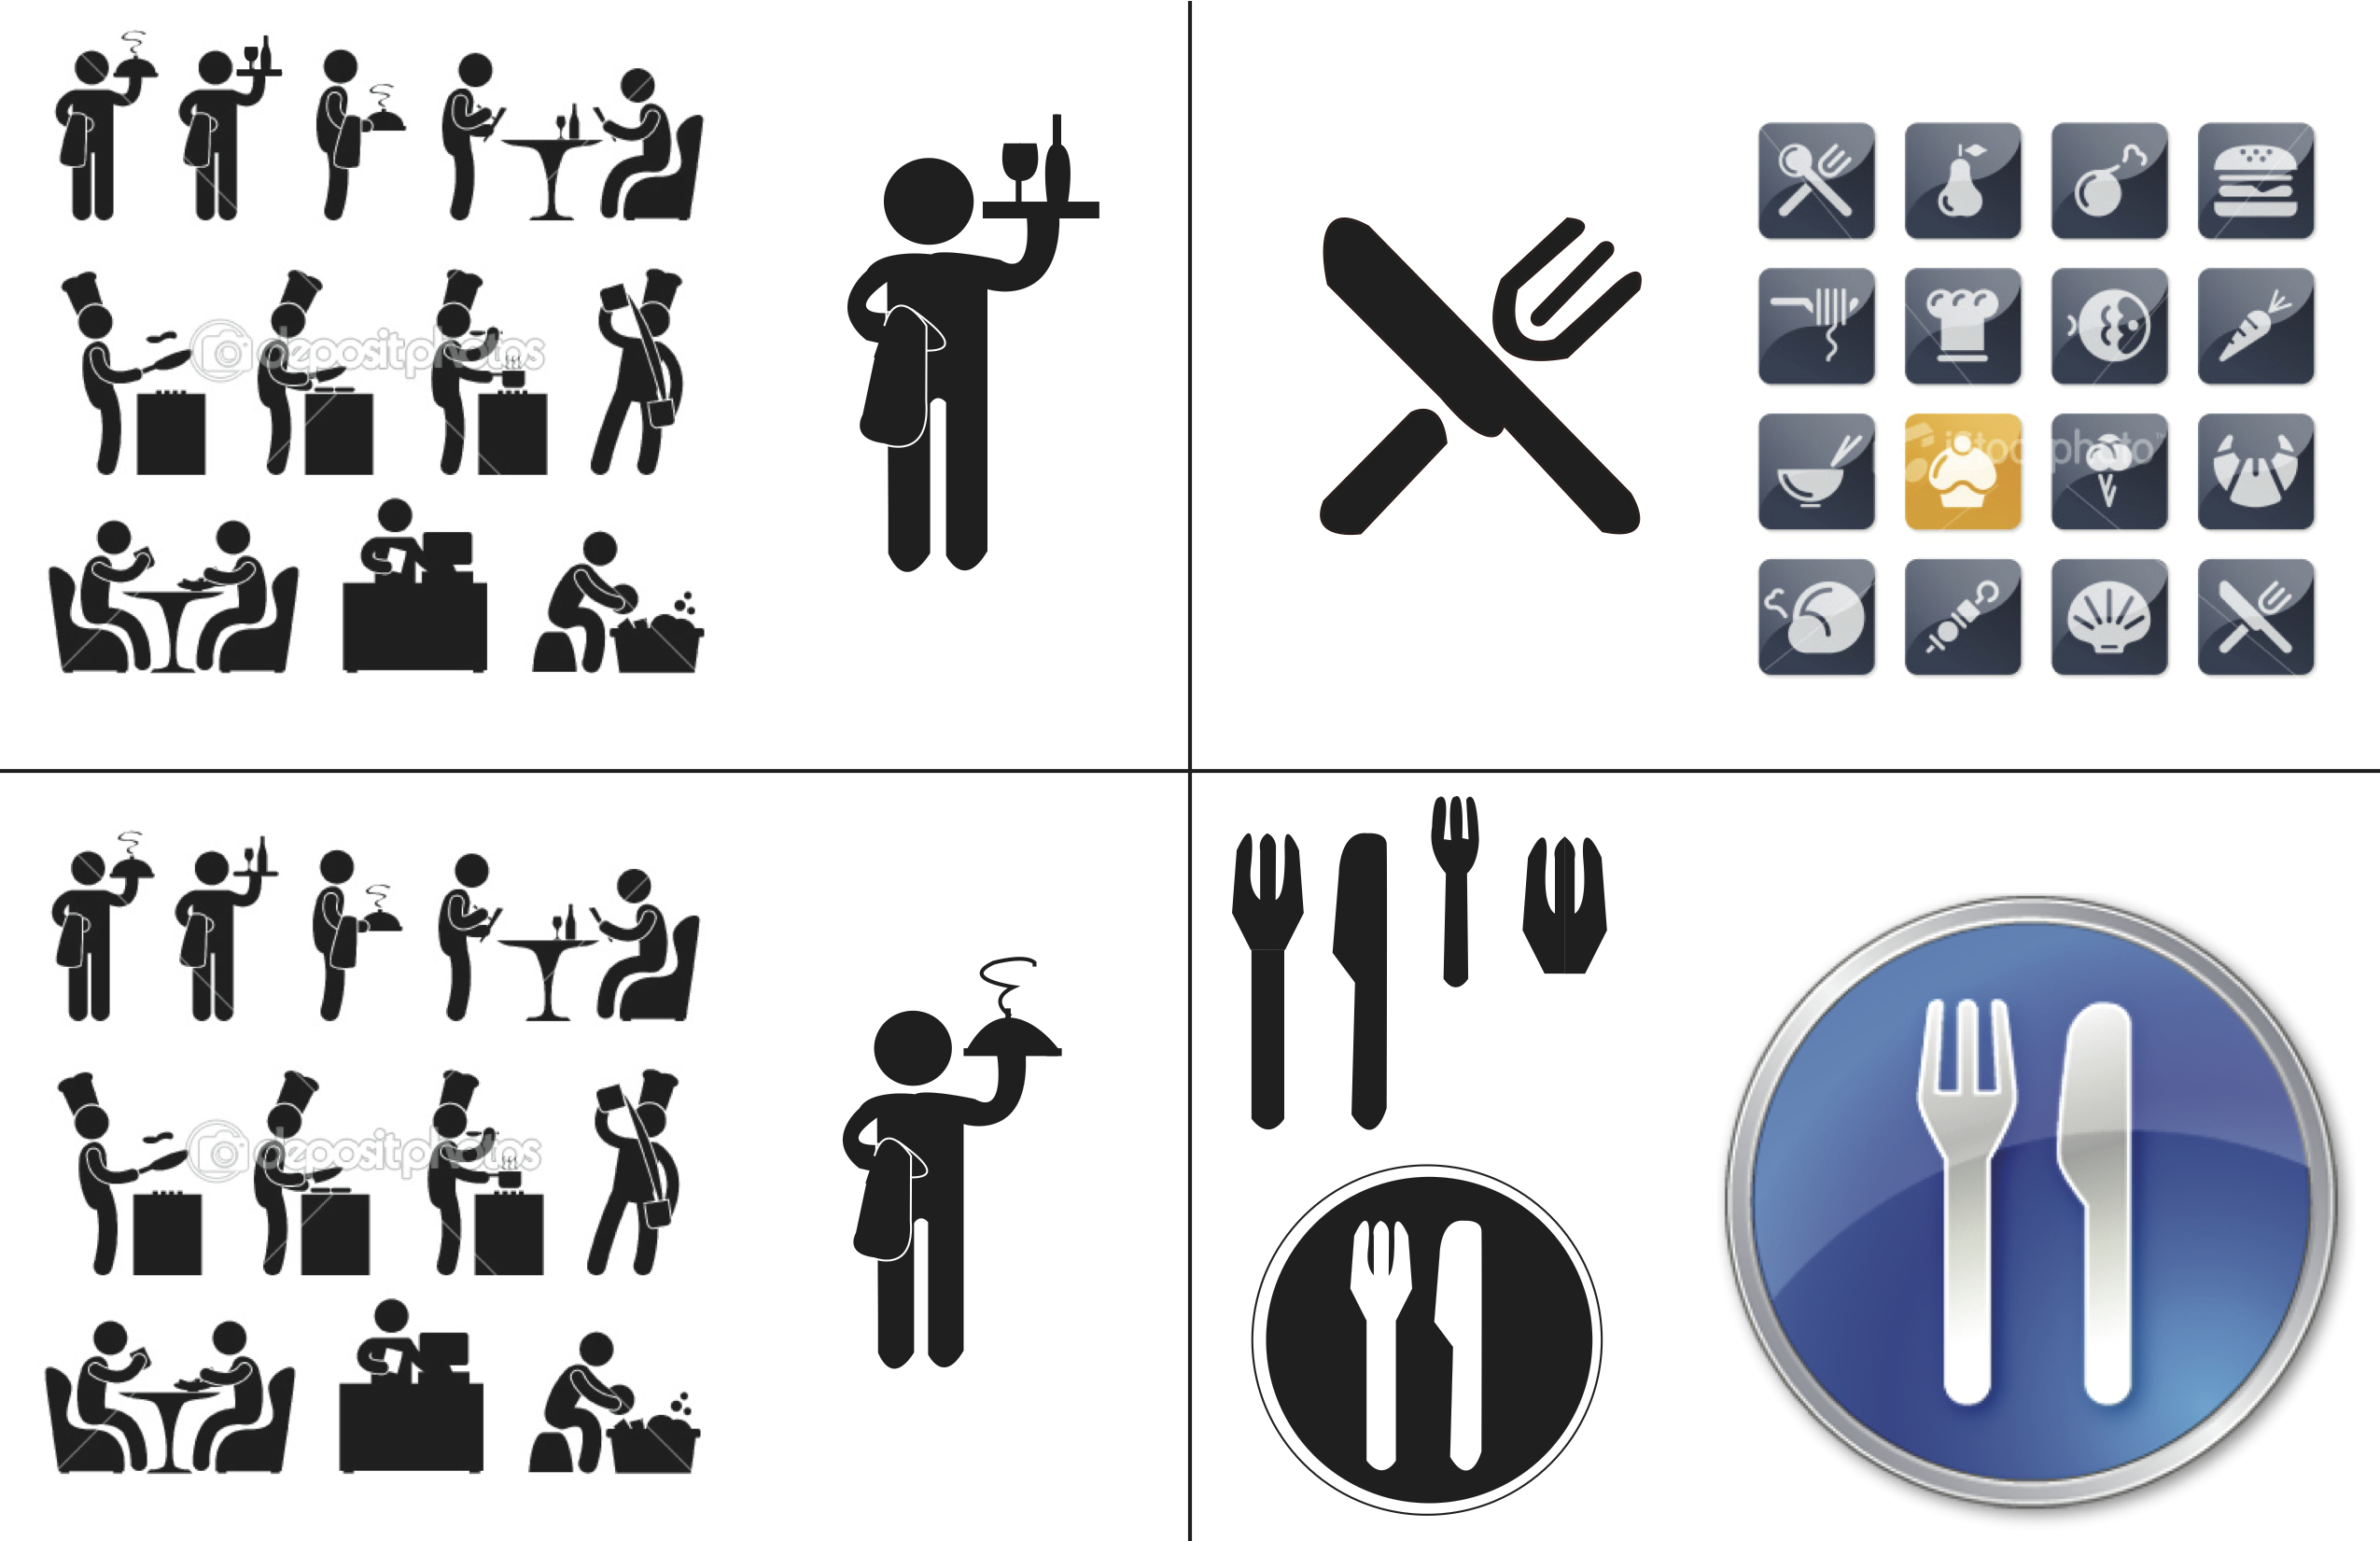 13 Restaurant Location Icon Images